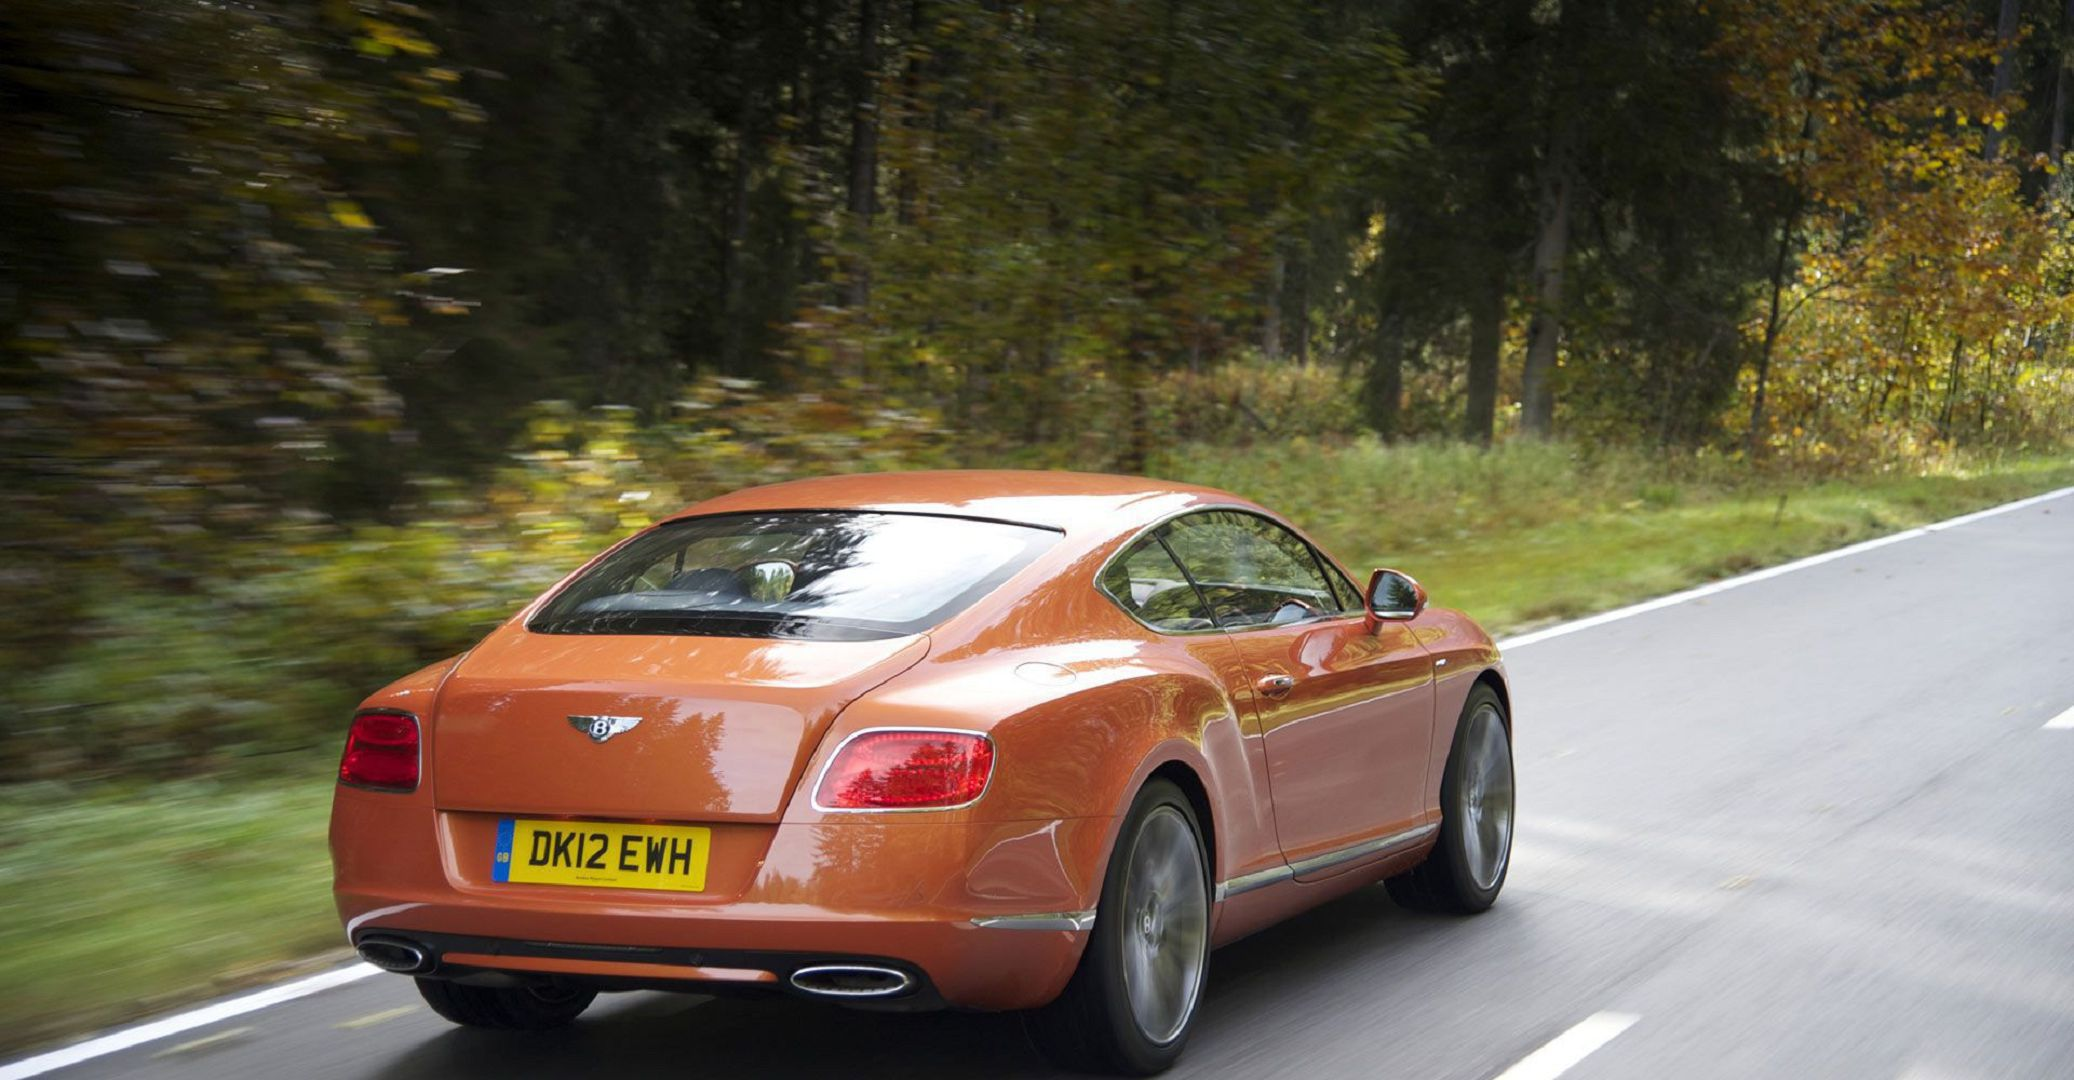 Bentley Continental Gt Wallpapers HD